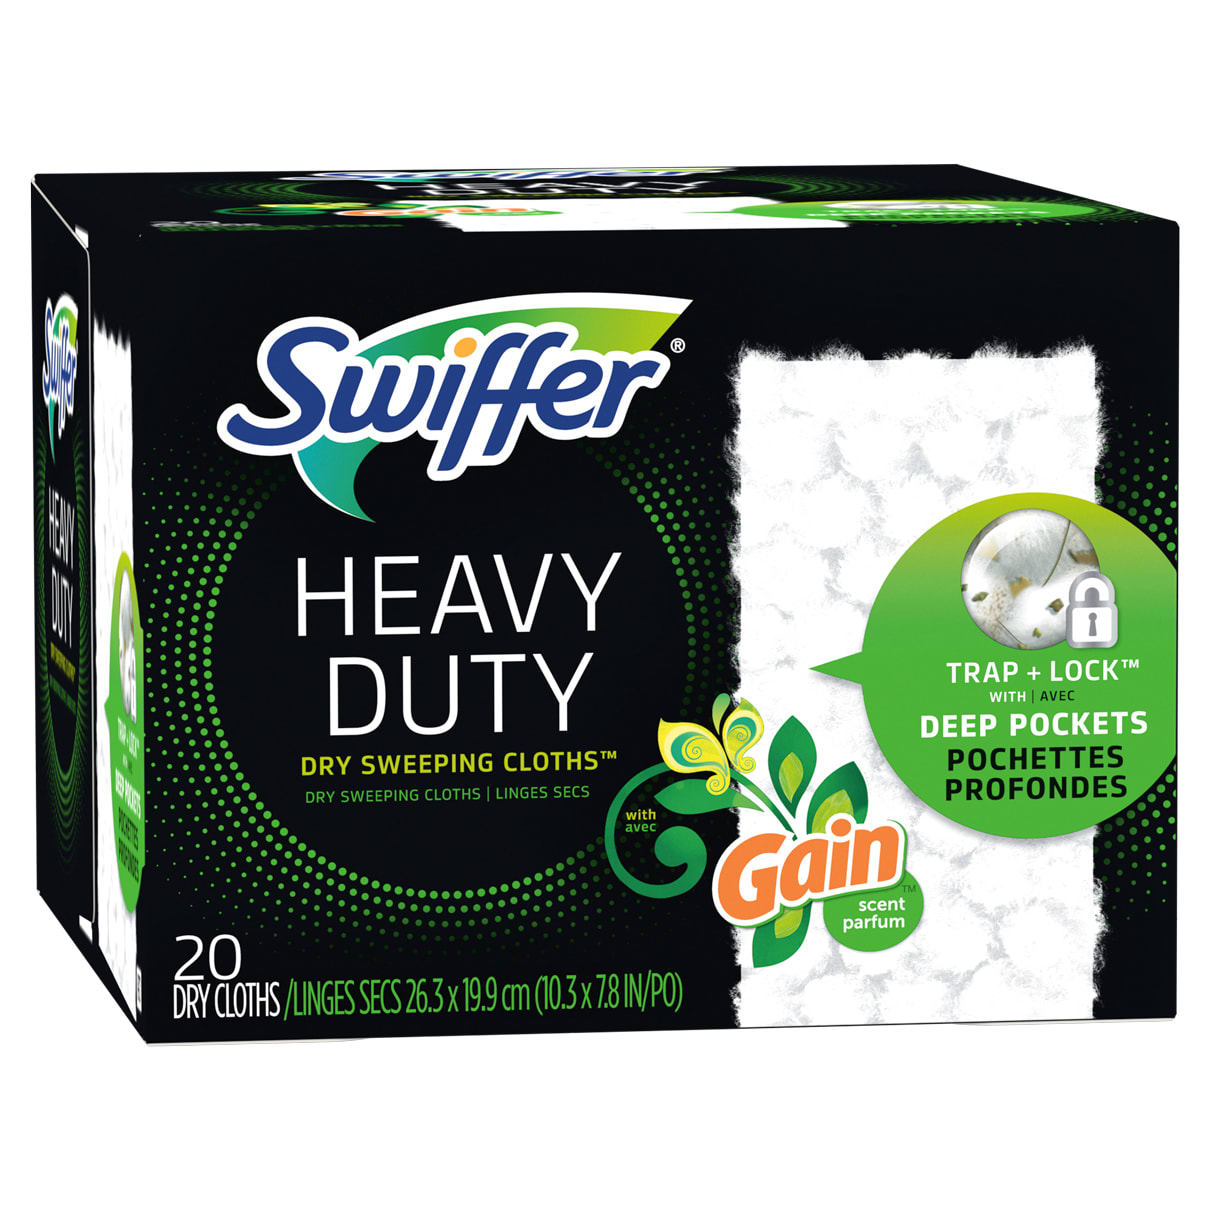 Sweeper Heavy Duty Multi Surface Dry Cloth Gain scent